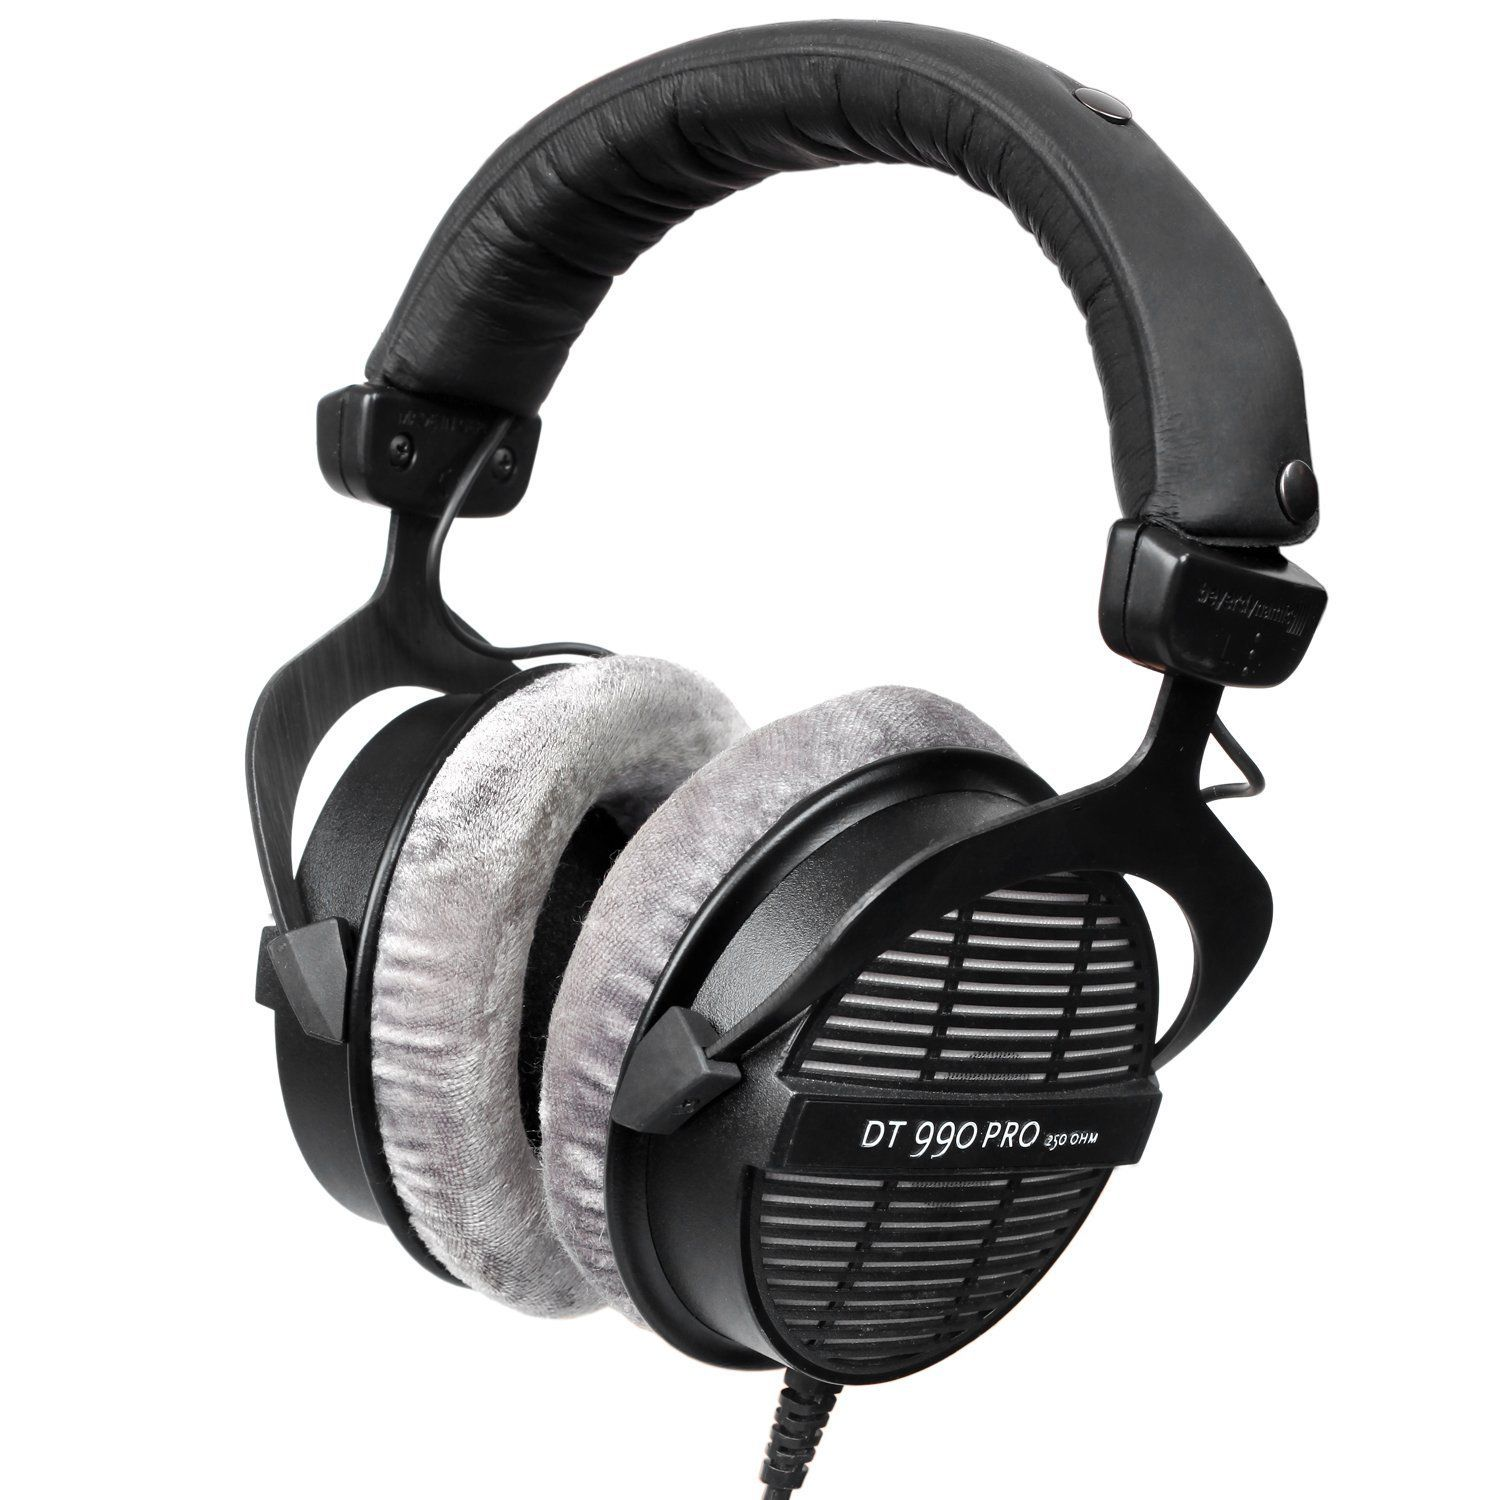 Beyerdynamic DT 990 Pro 250 Ohm Hallo-fi kopfhörer, Professional Studio Headsets, Open Back Stirnband headpones Made in Deutschland image